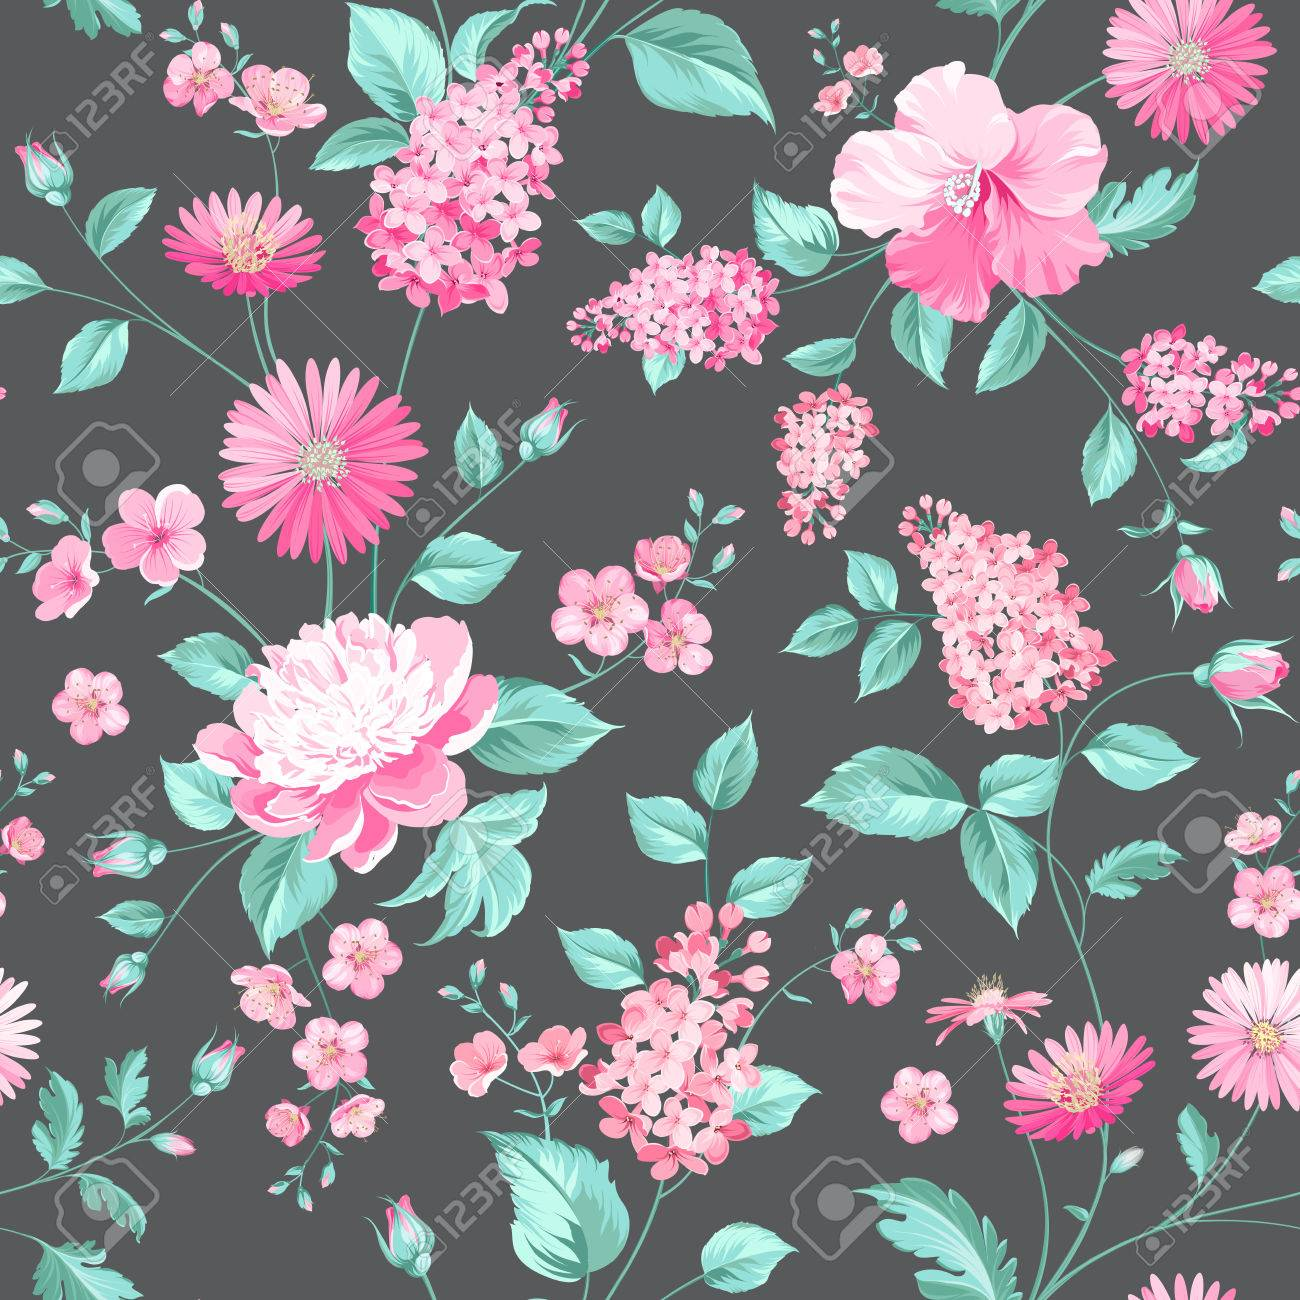 Fabric Flower Pattern Cool Inspiration